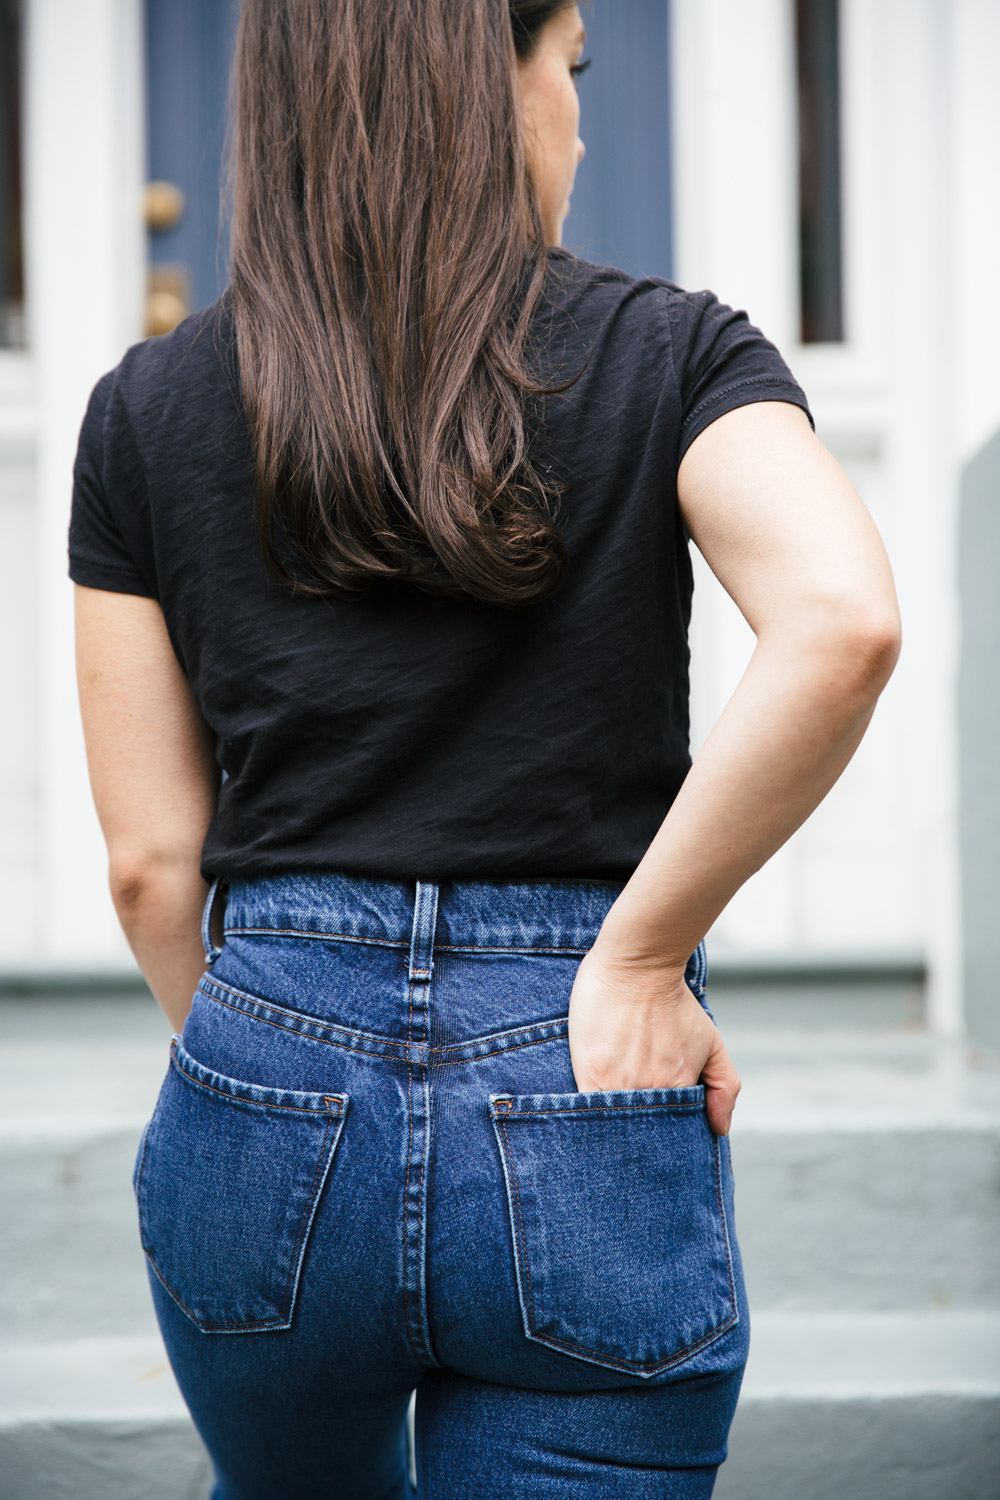 A Cup of Jo: How to Style Jeans